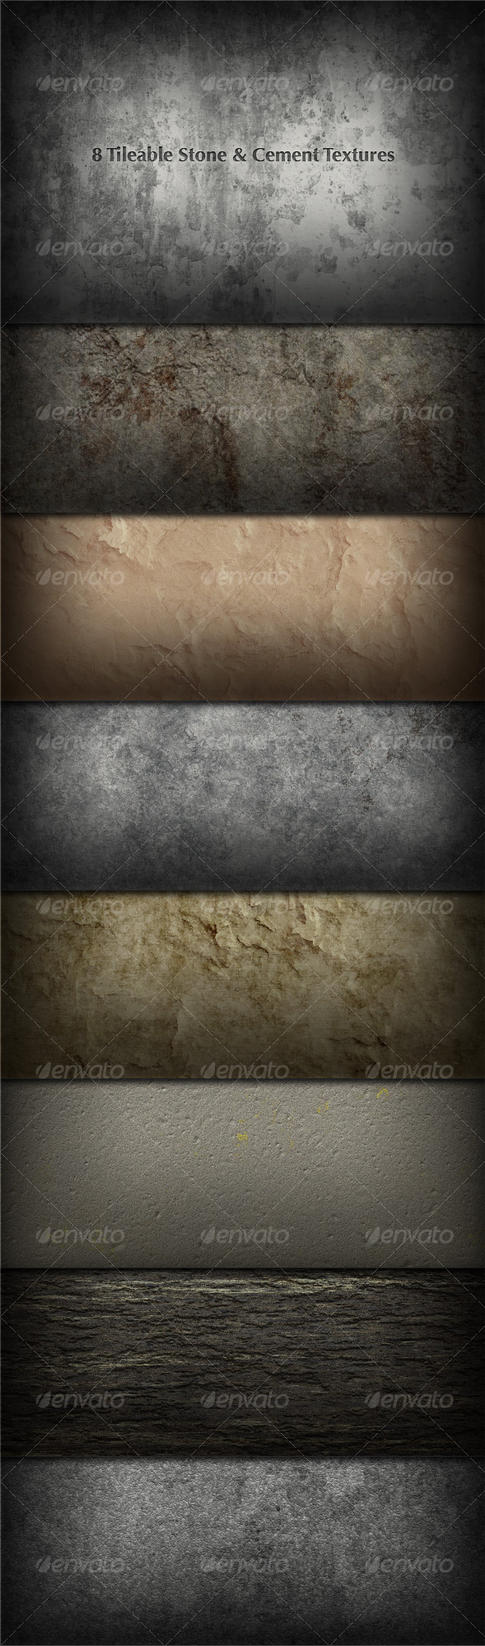 8 Tileable Stone-Concrete by lickmystyle